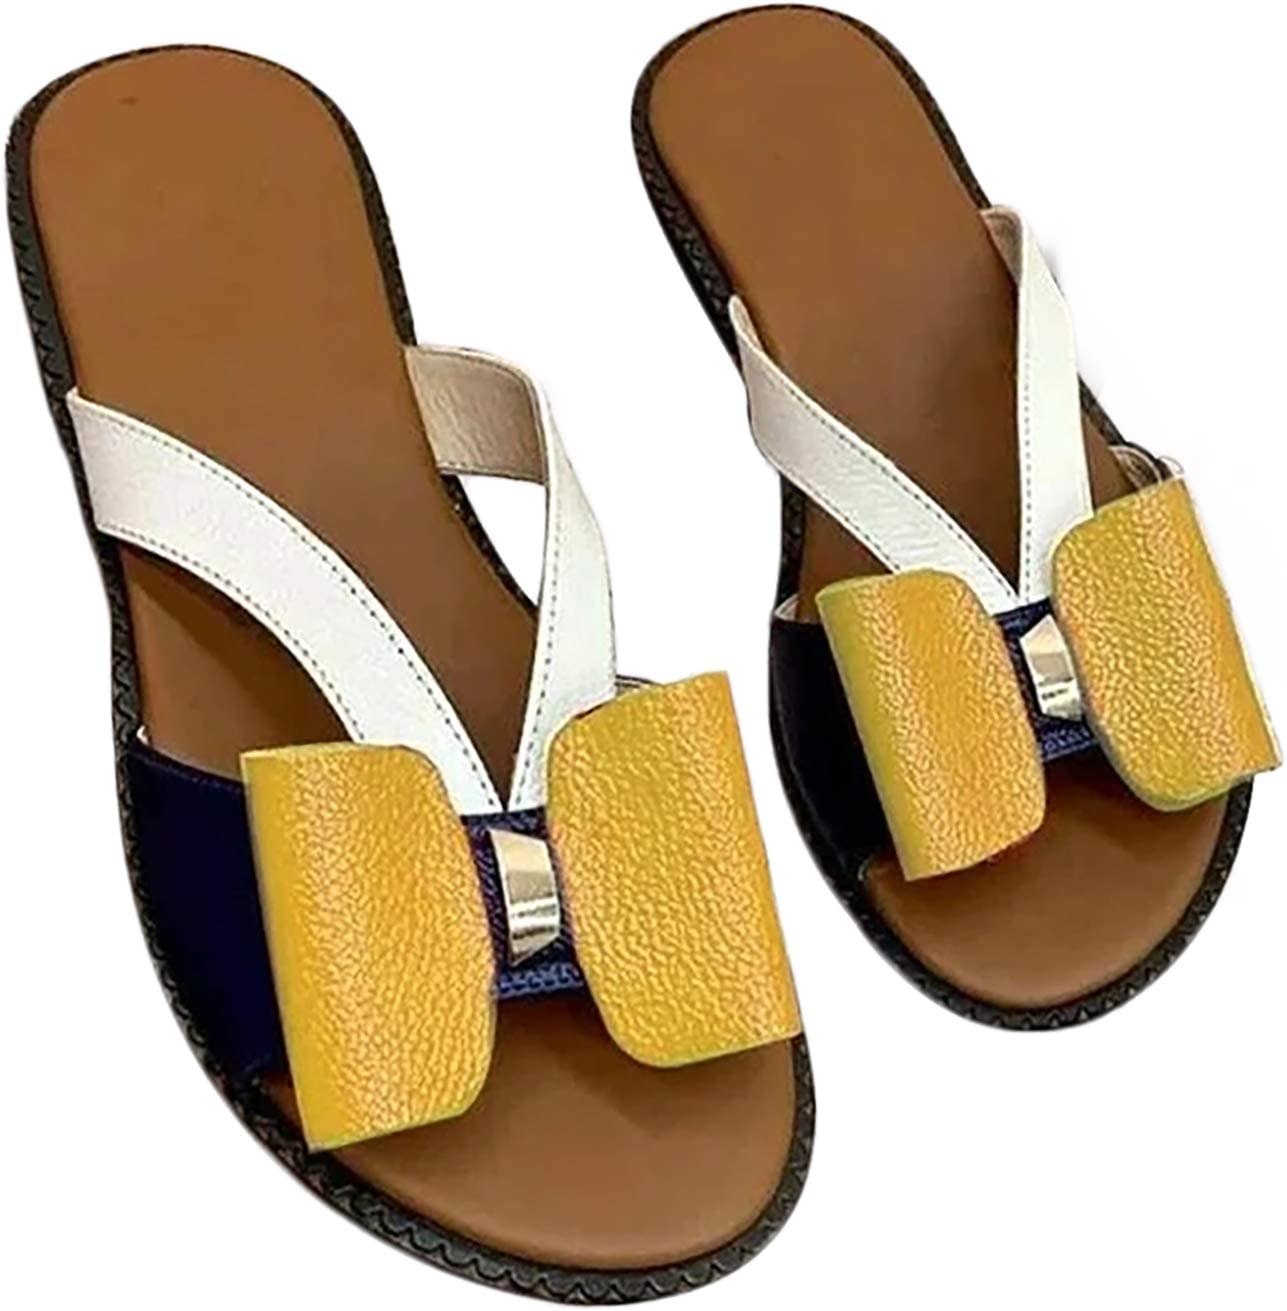 Auralto Fashionable Bow Slippers for Women Comfortable Open Toe Slide with Cute Bow Sandals Beach Flat for Outdoor